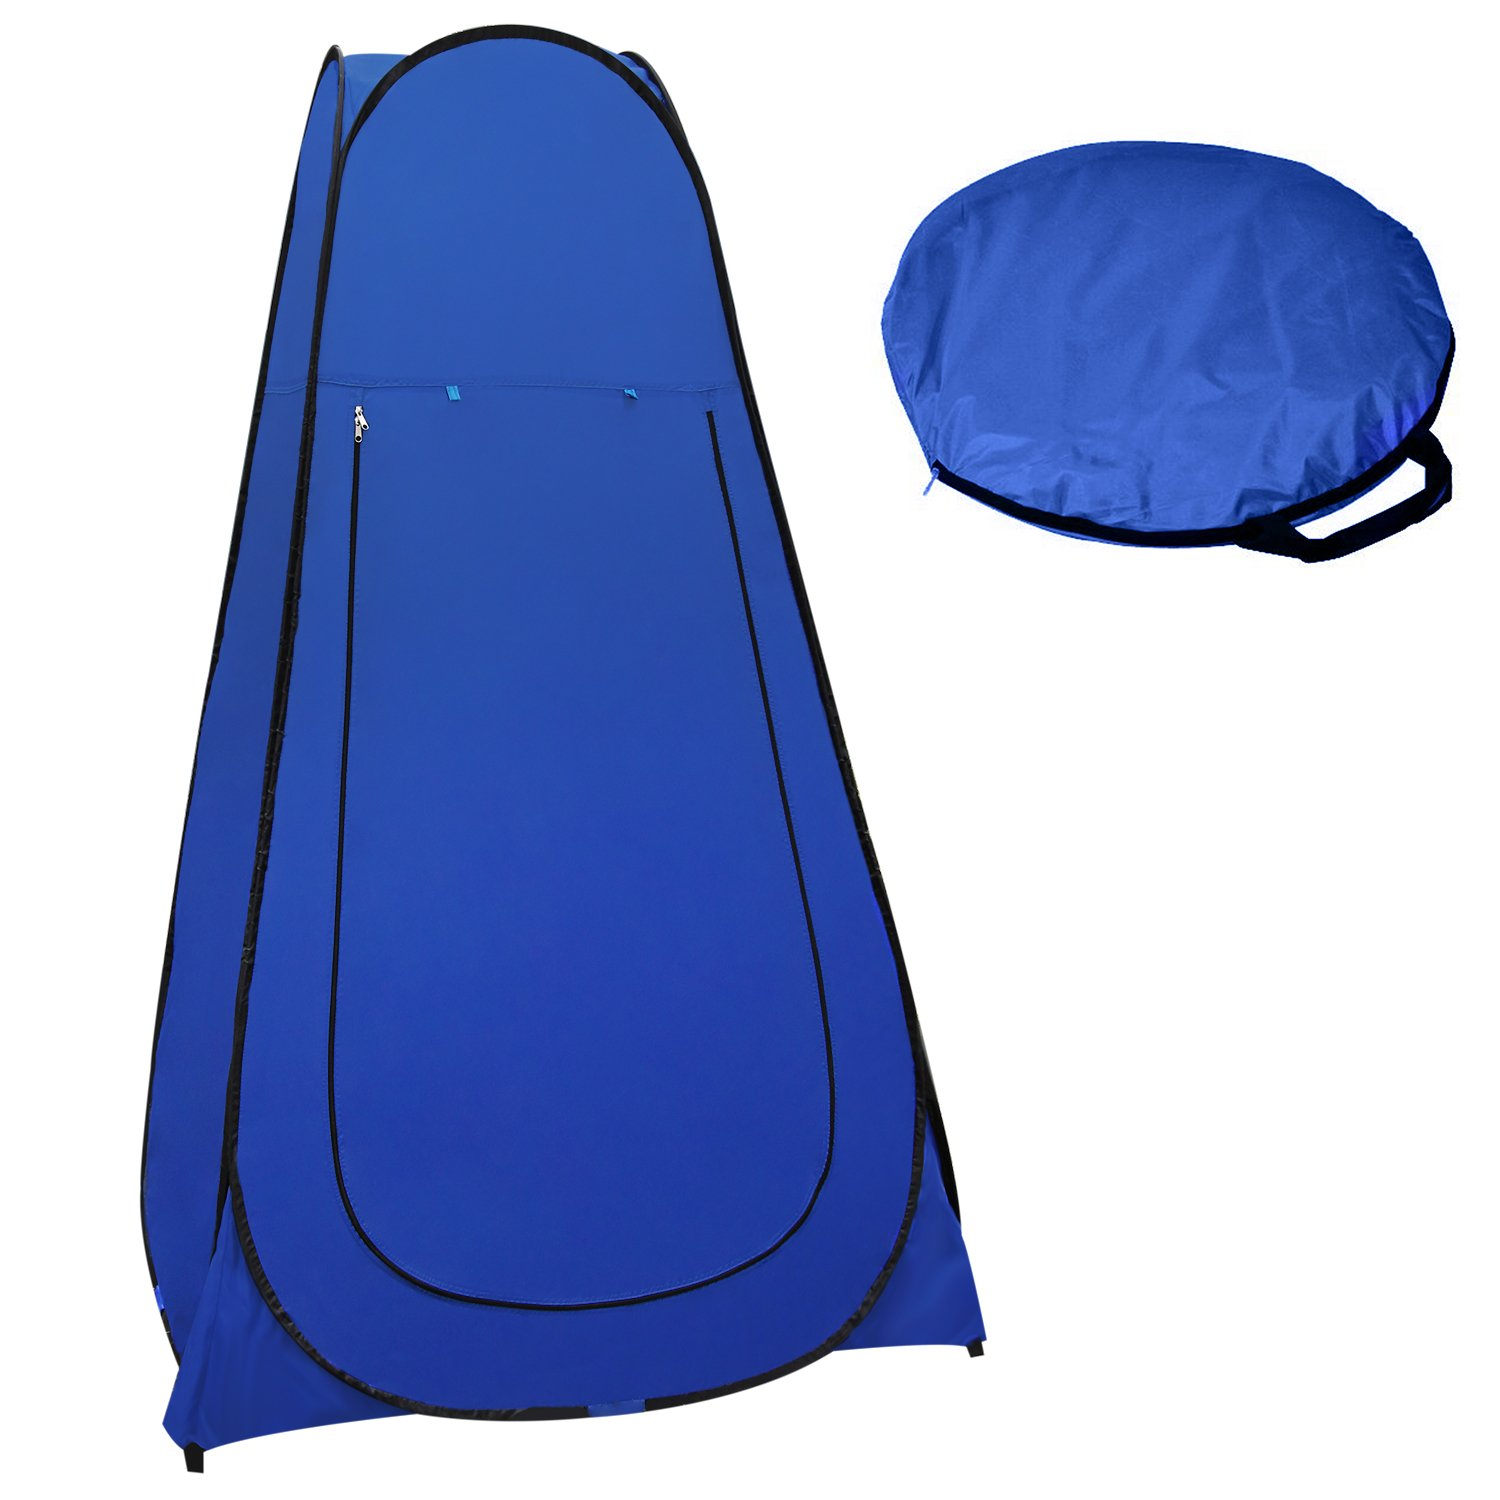 Jumbl Portable Pop-Up Privacy Tent – Perfect Outdoor Changing Room or Convenient Toilet Camping Shelter